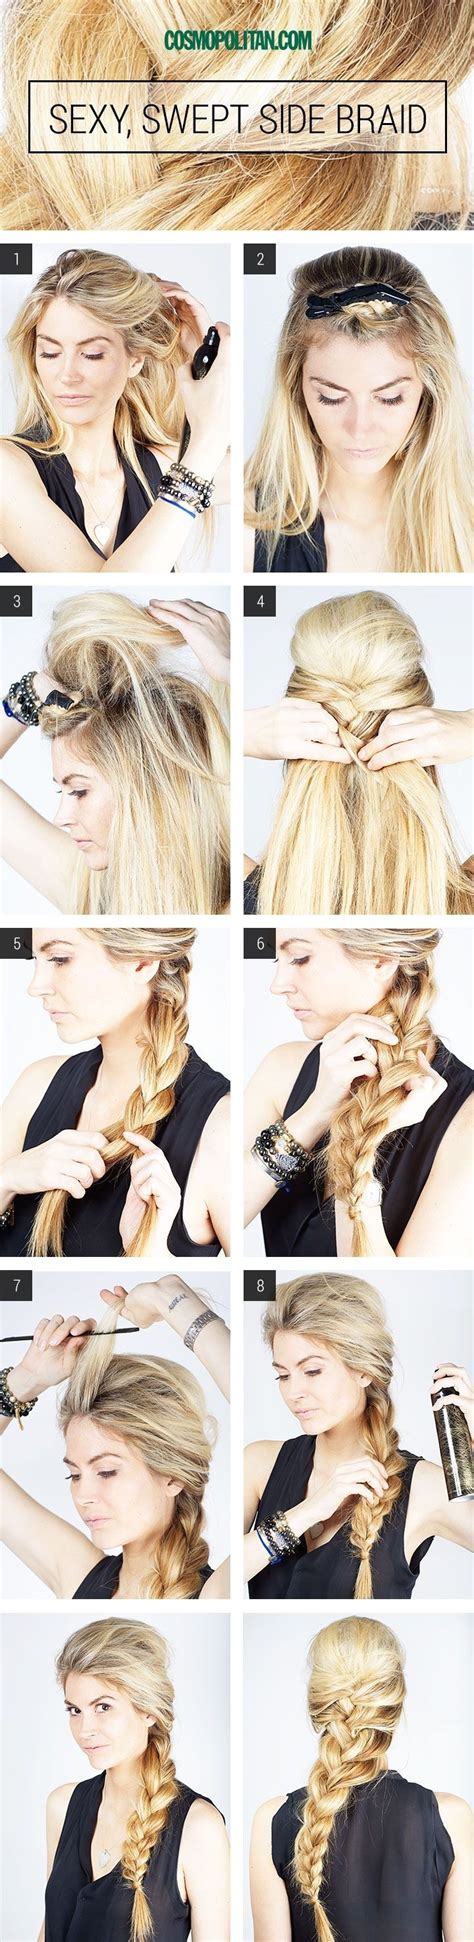 the perfect braid 10 charming braided hairstyles tutorials for summer